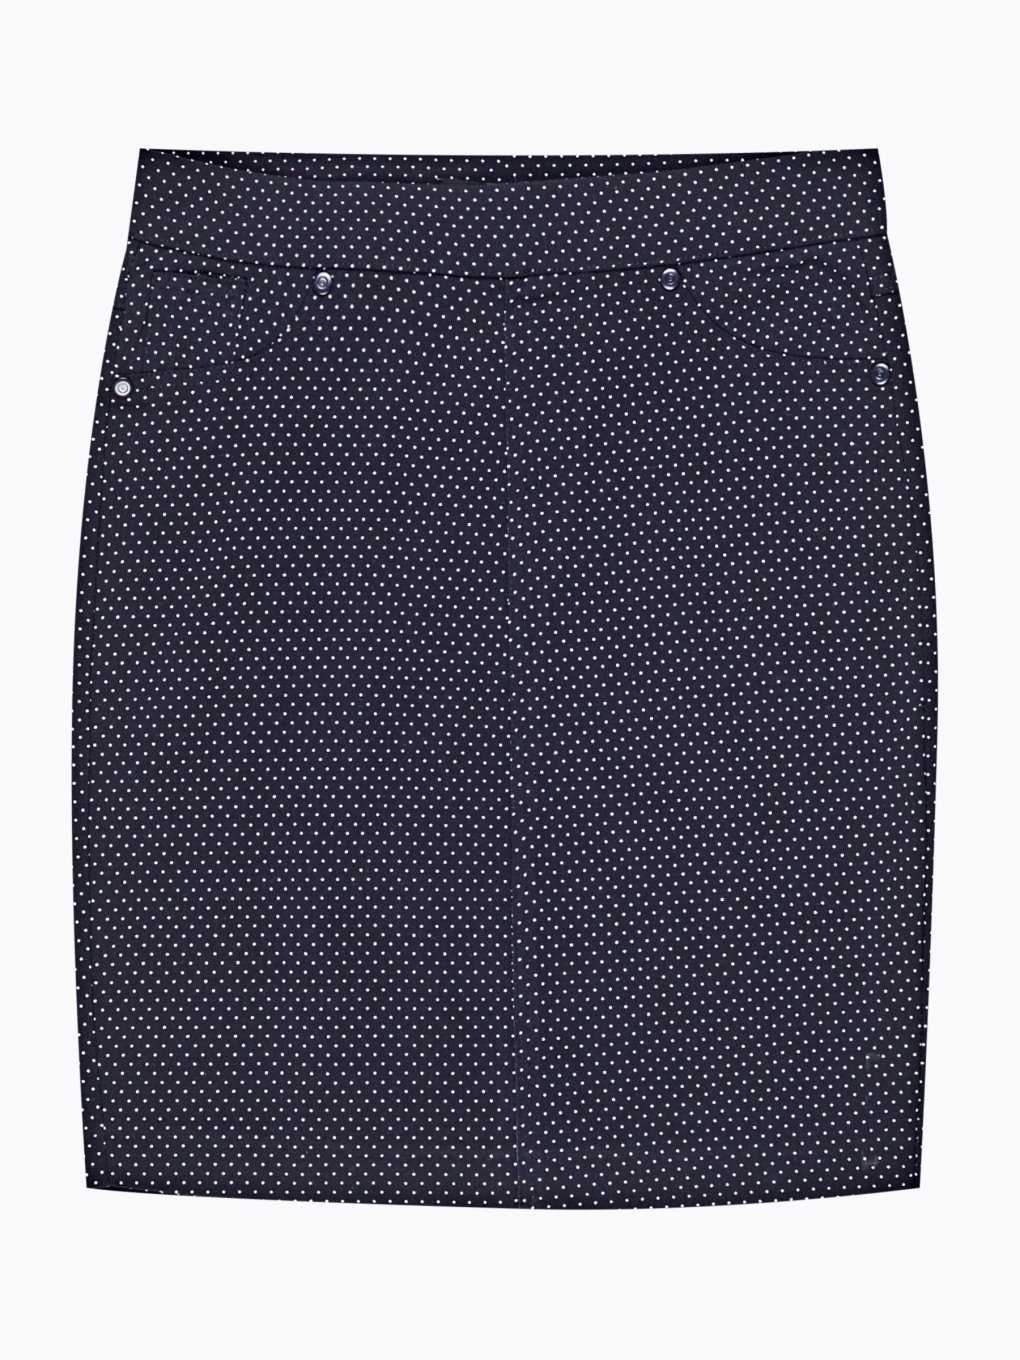 Polka dot print bodycon skirt